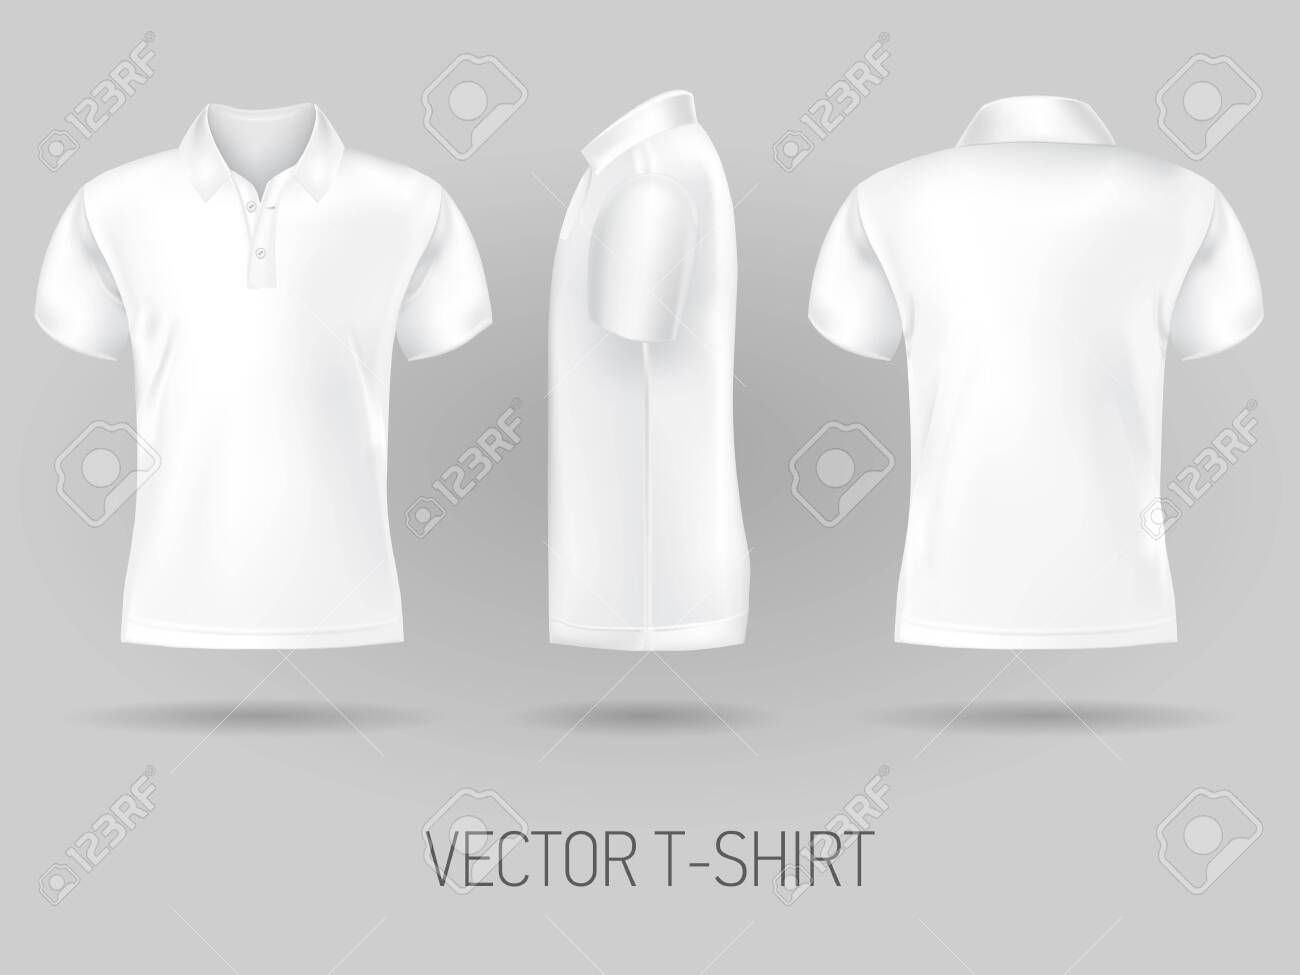 003 Stirring Tee Shirt Design Template Image  Templates T Illustrator Free Download Polo PsdFull